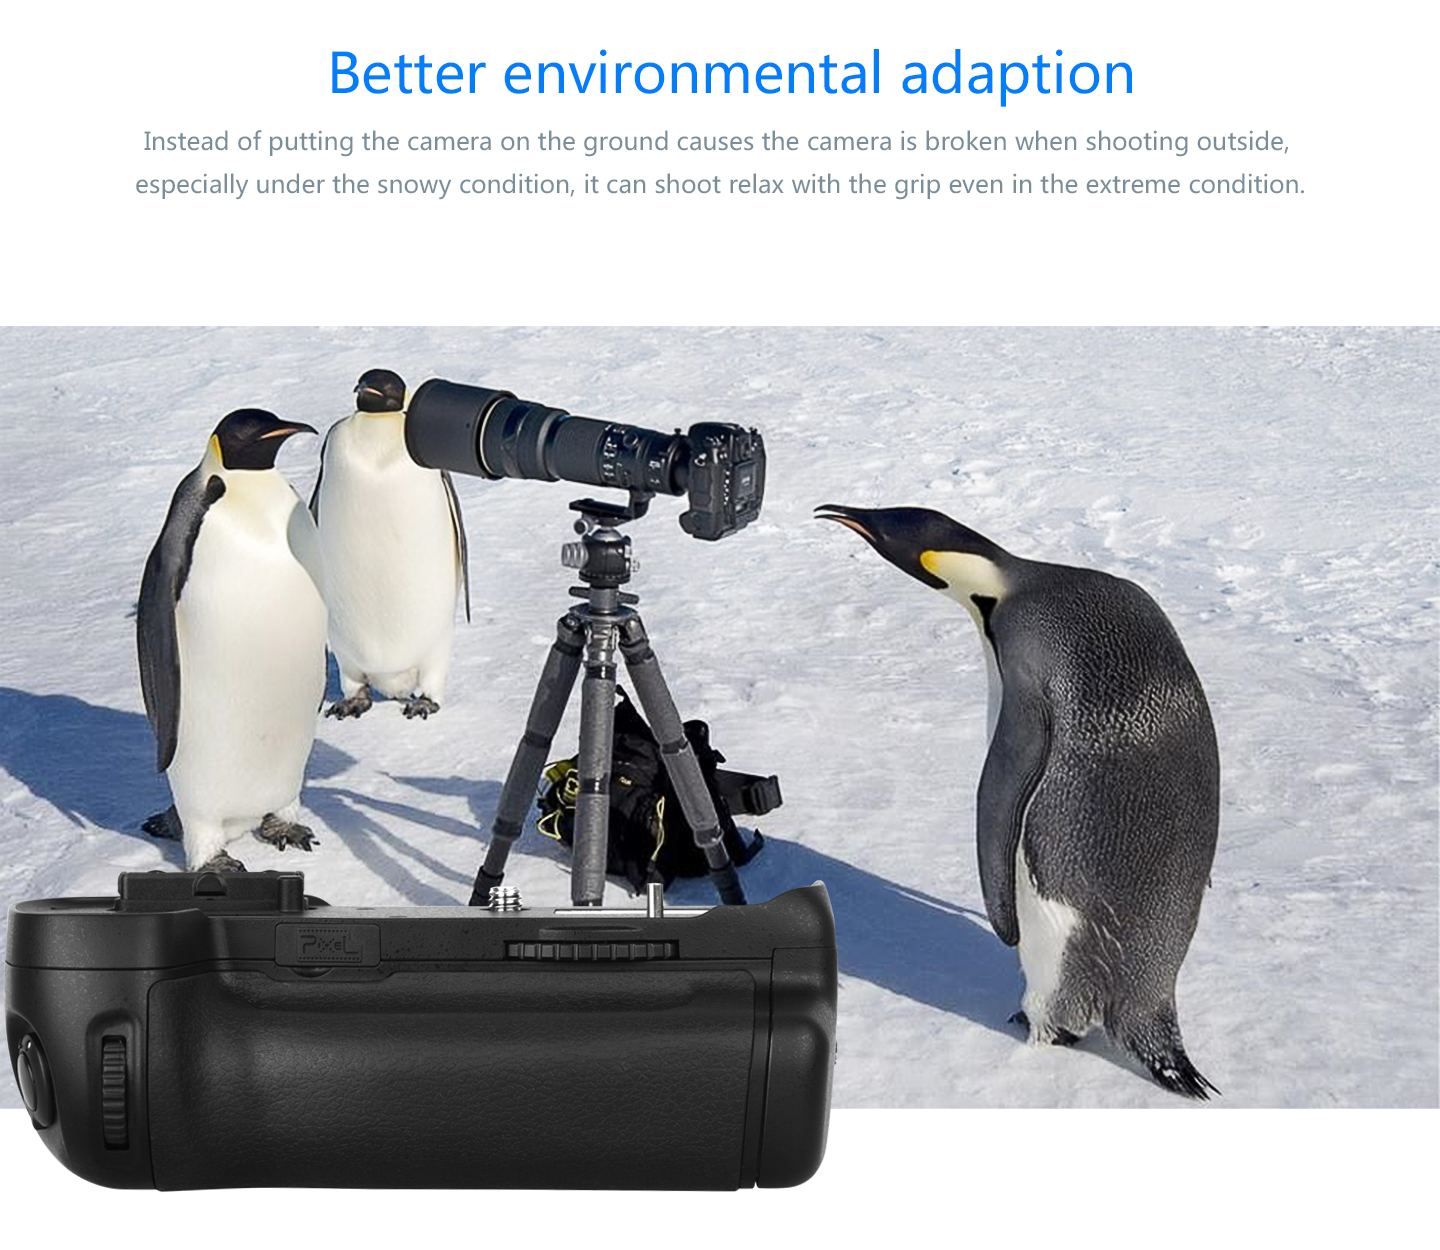 Better environmental adaption